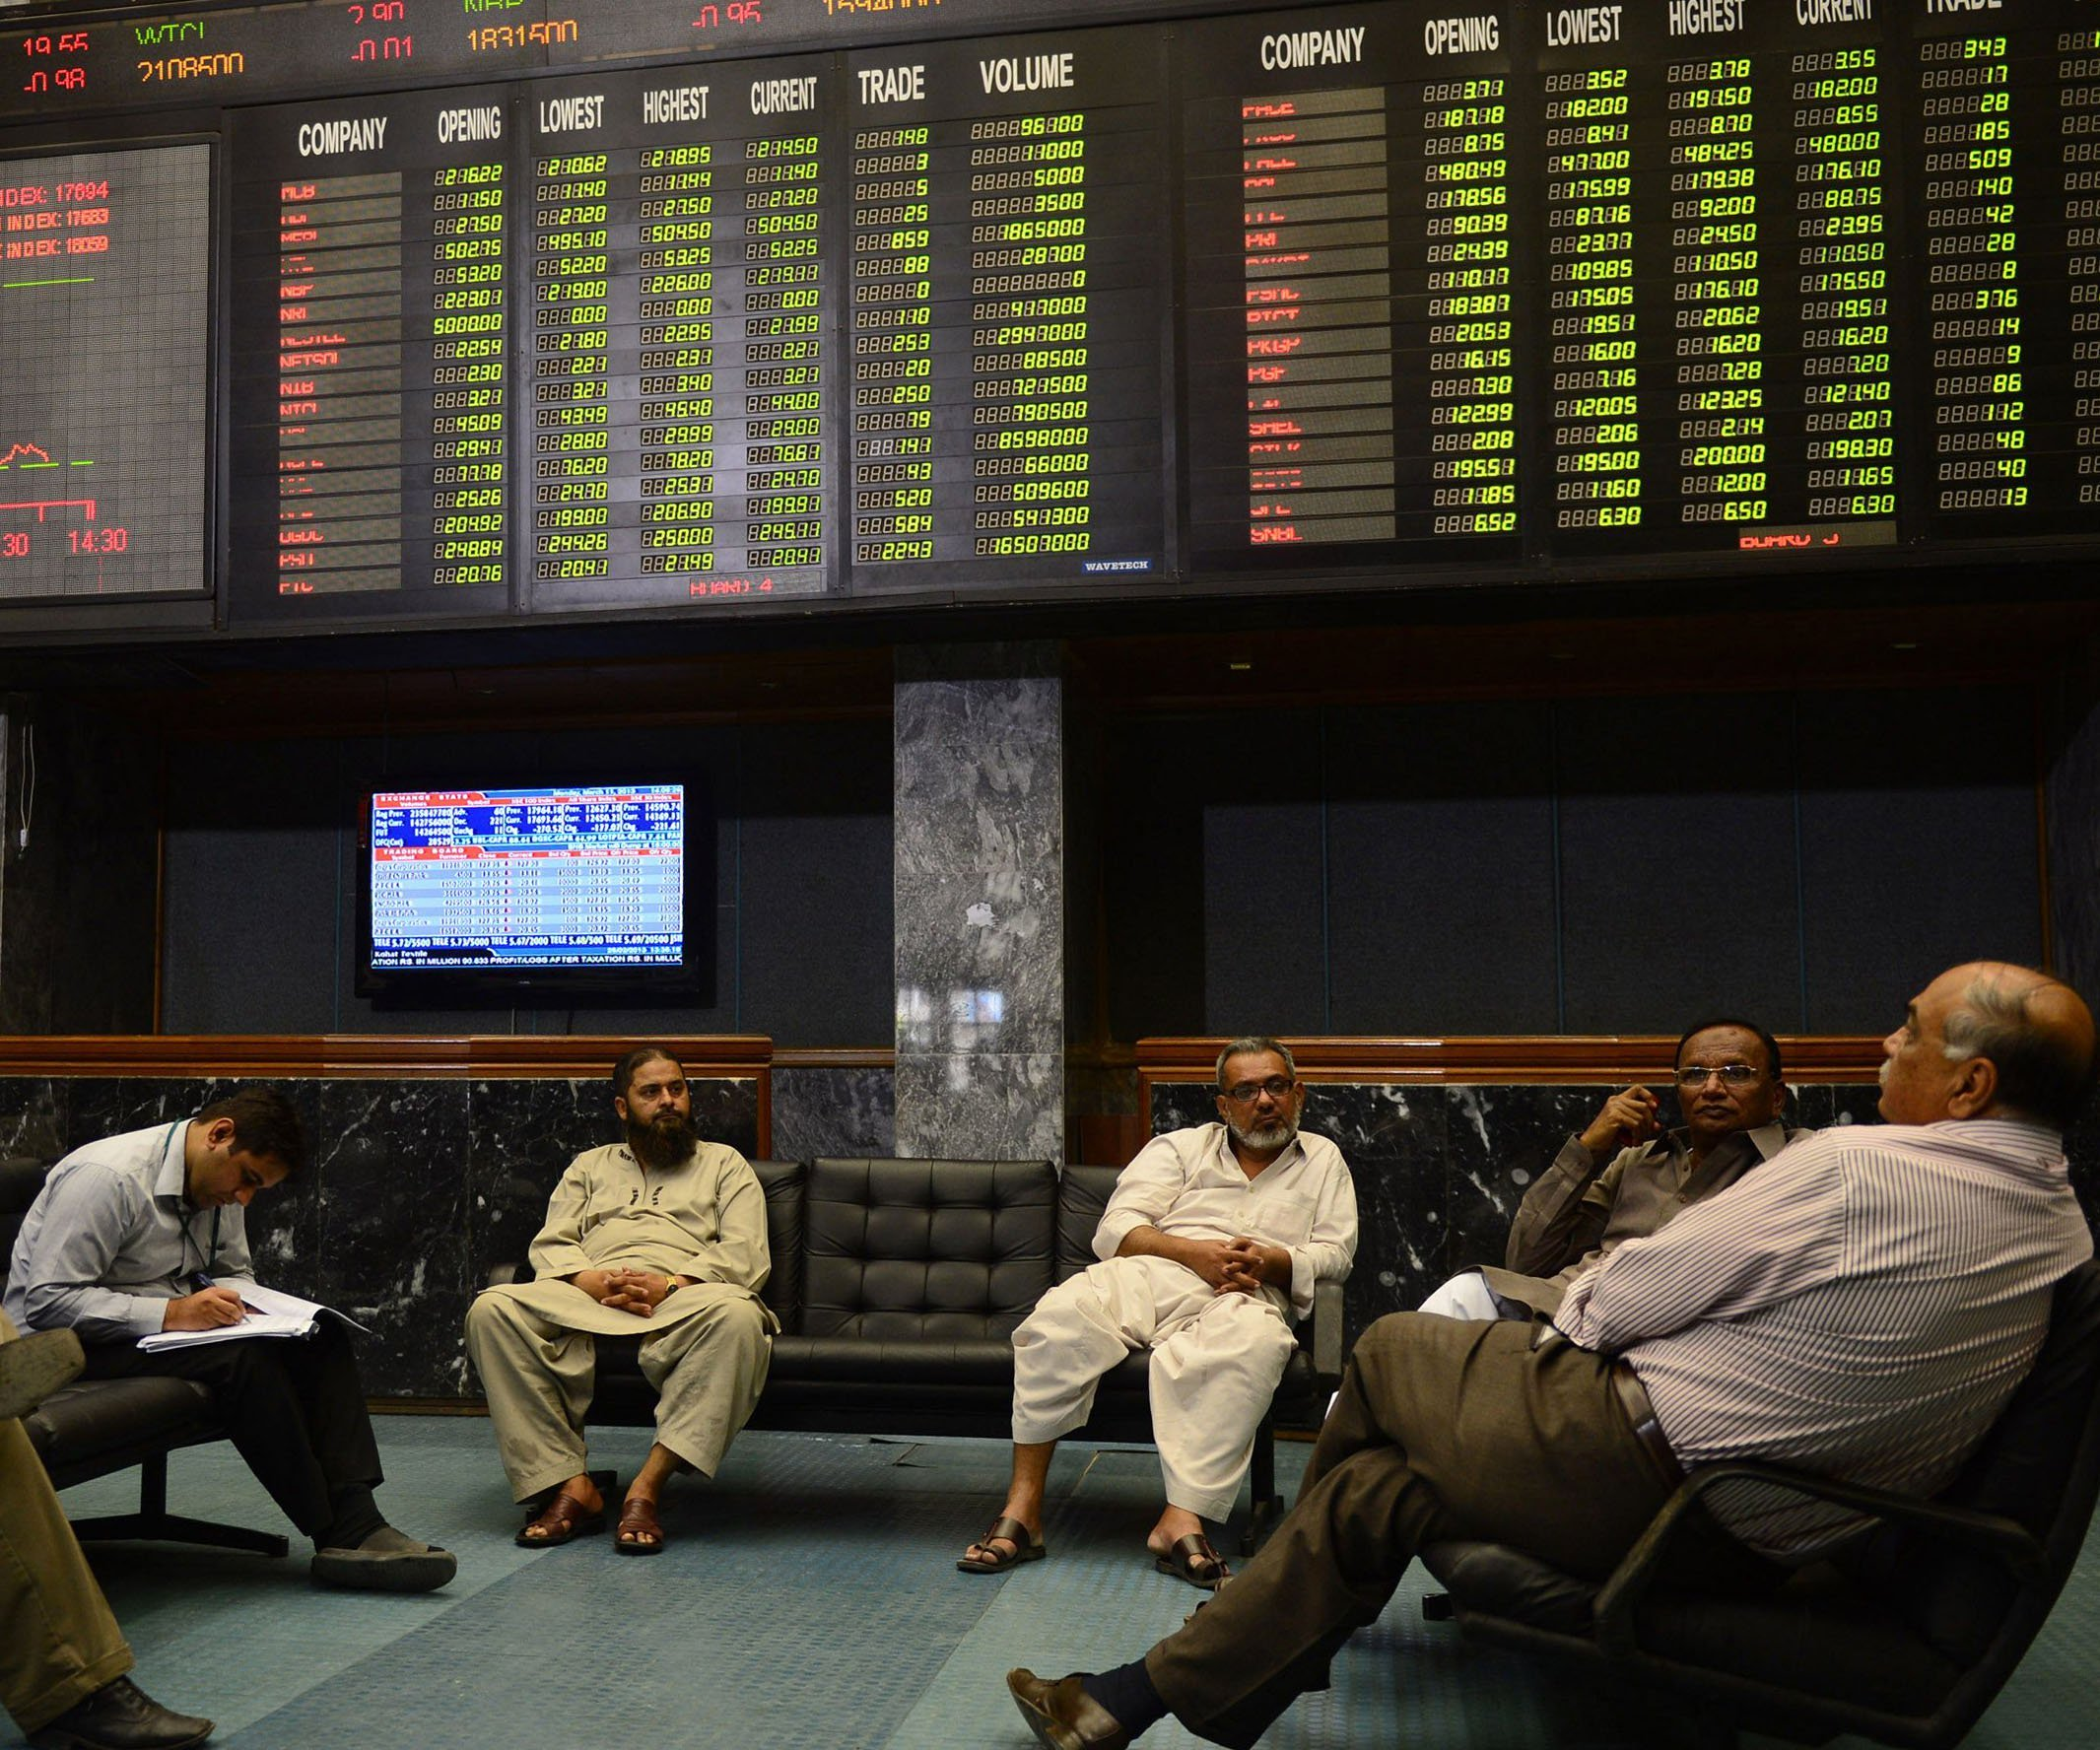 market watch stocks gain 63 points in see saw session